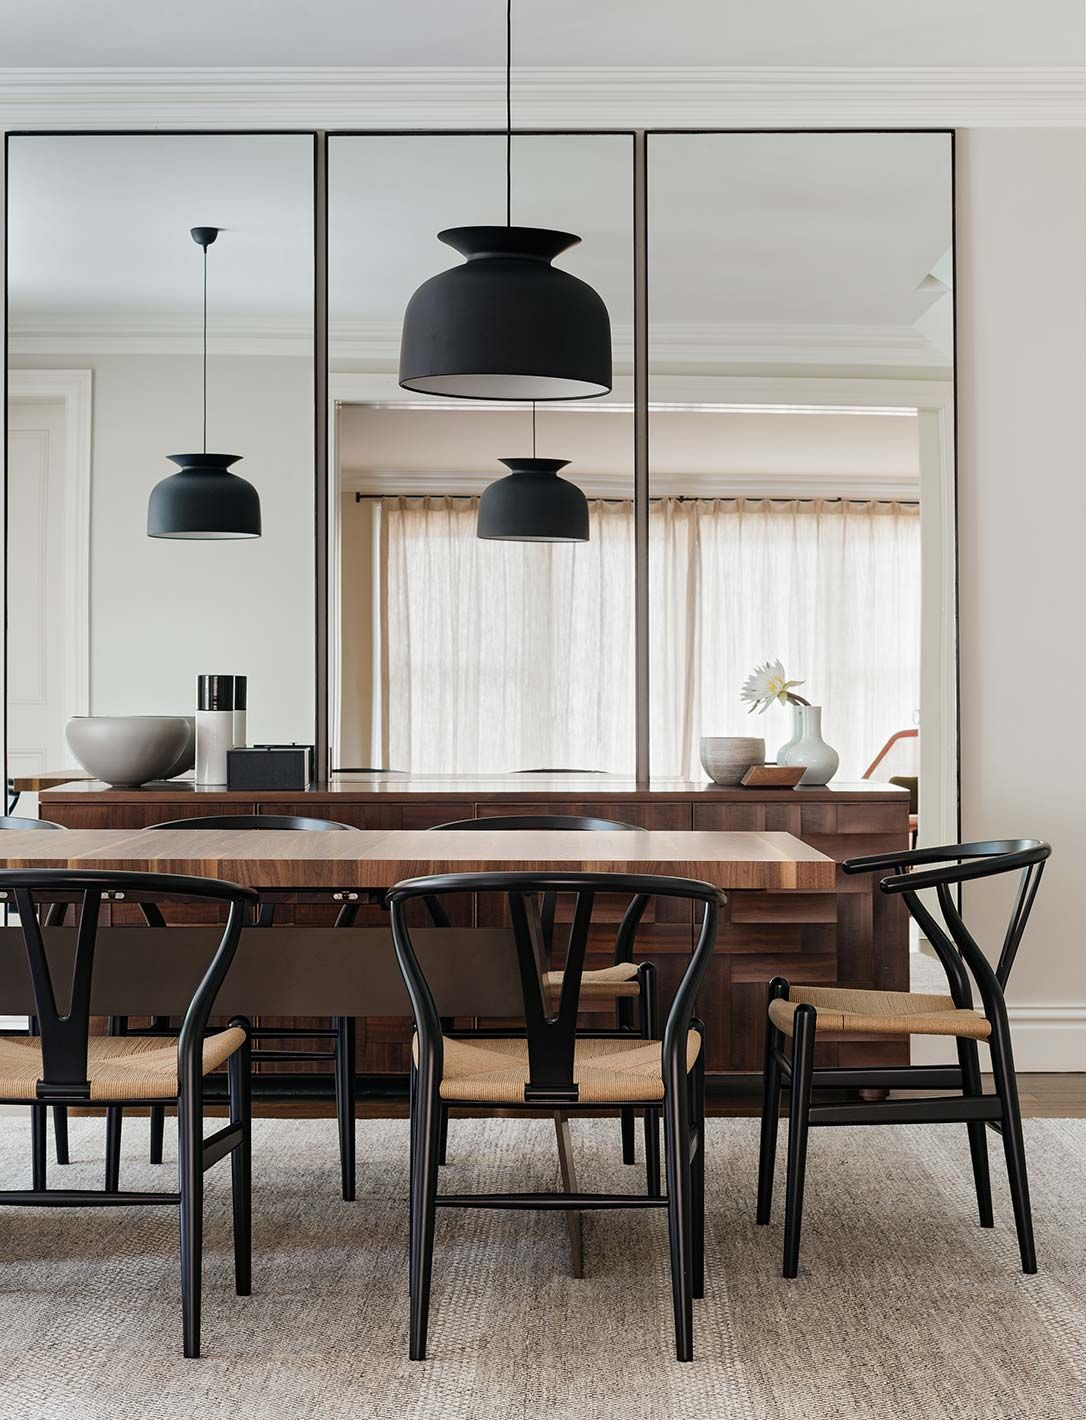 dining room with black wishbone chairs and gubi 'rode